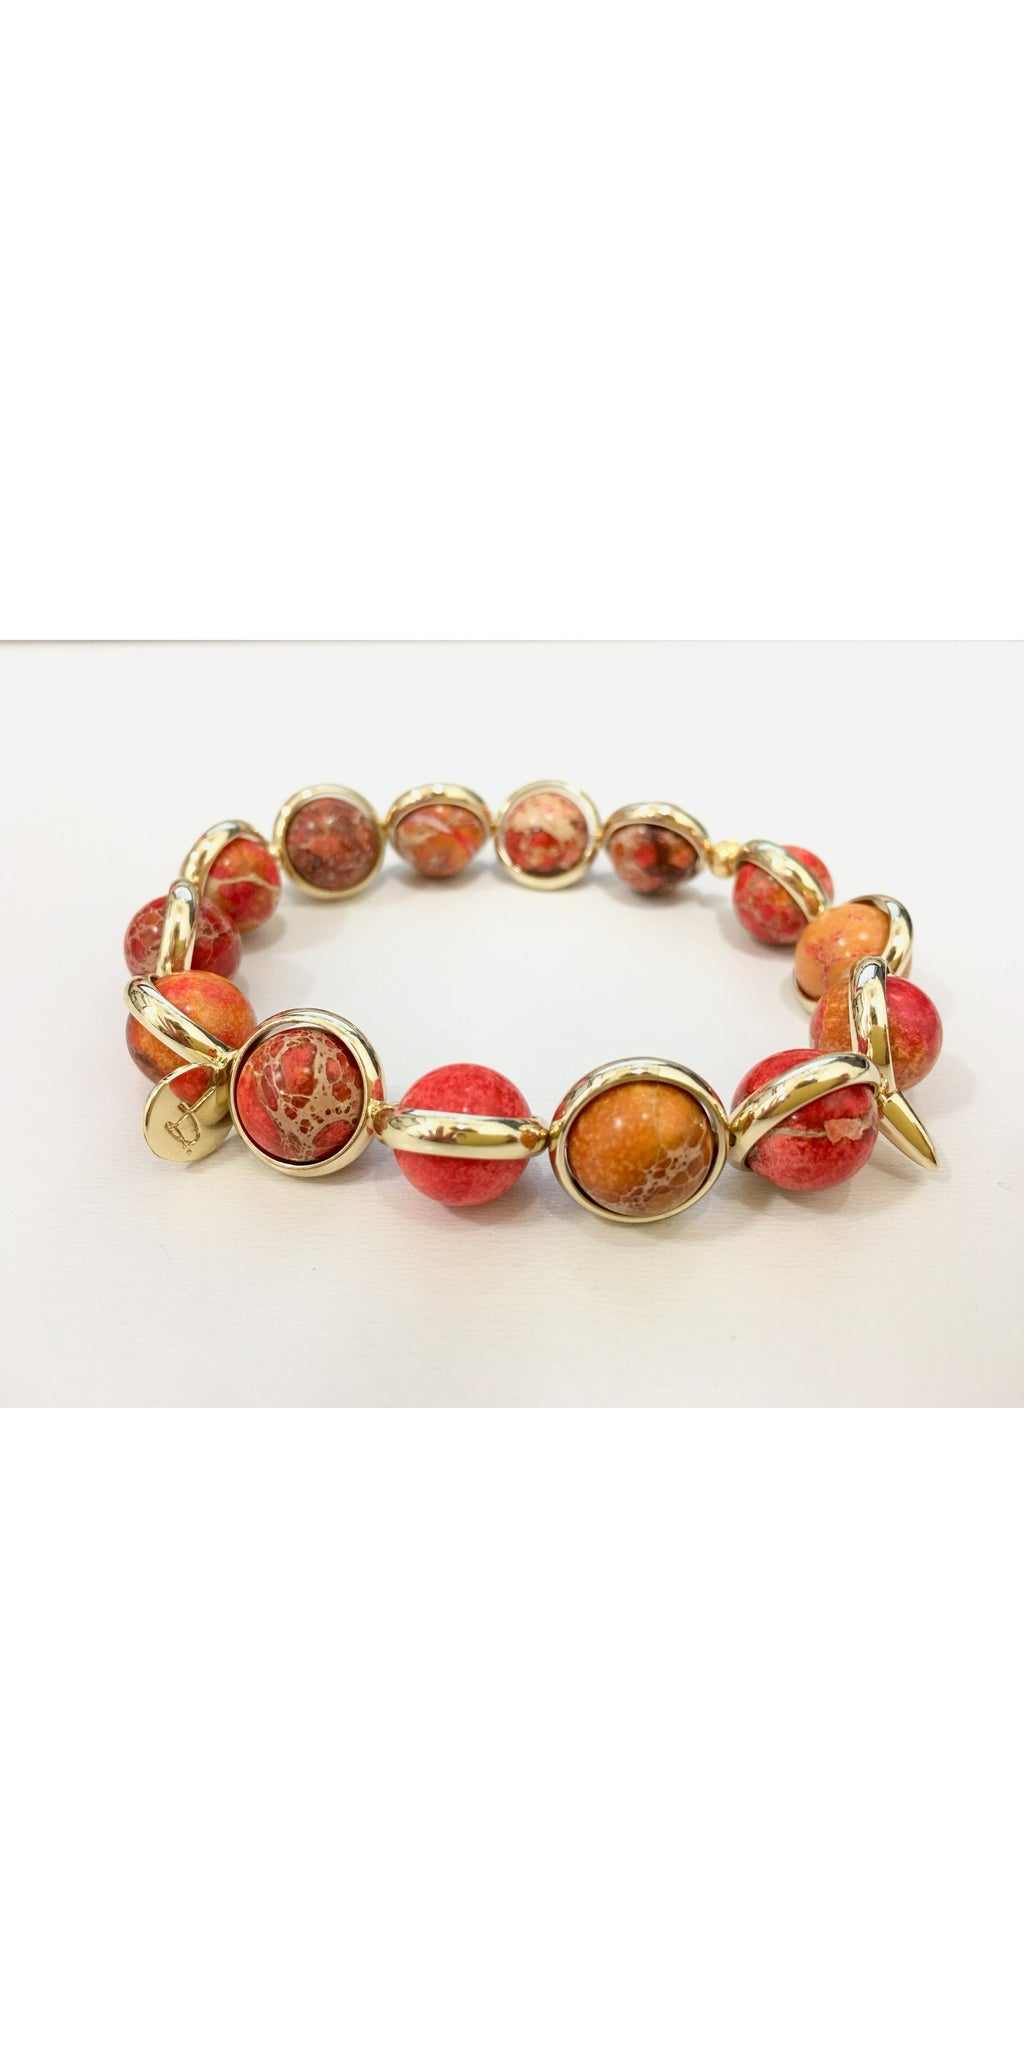 Orange African Opal Bead Bracelet - Gold-Sea Biscuit Del Mar